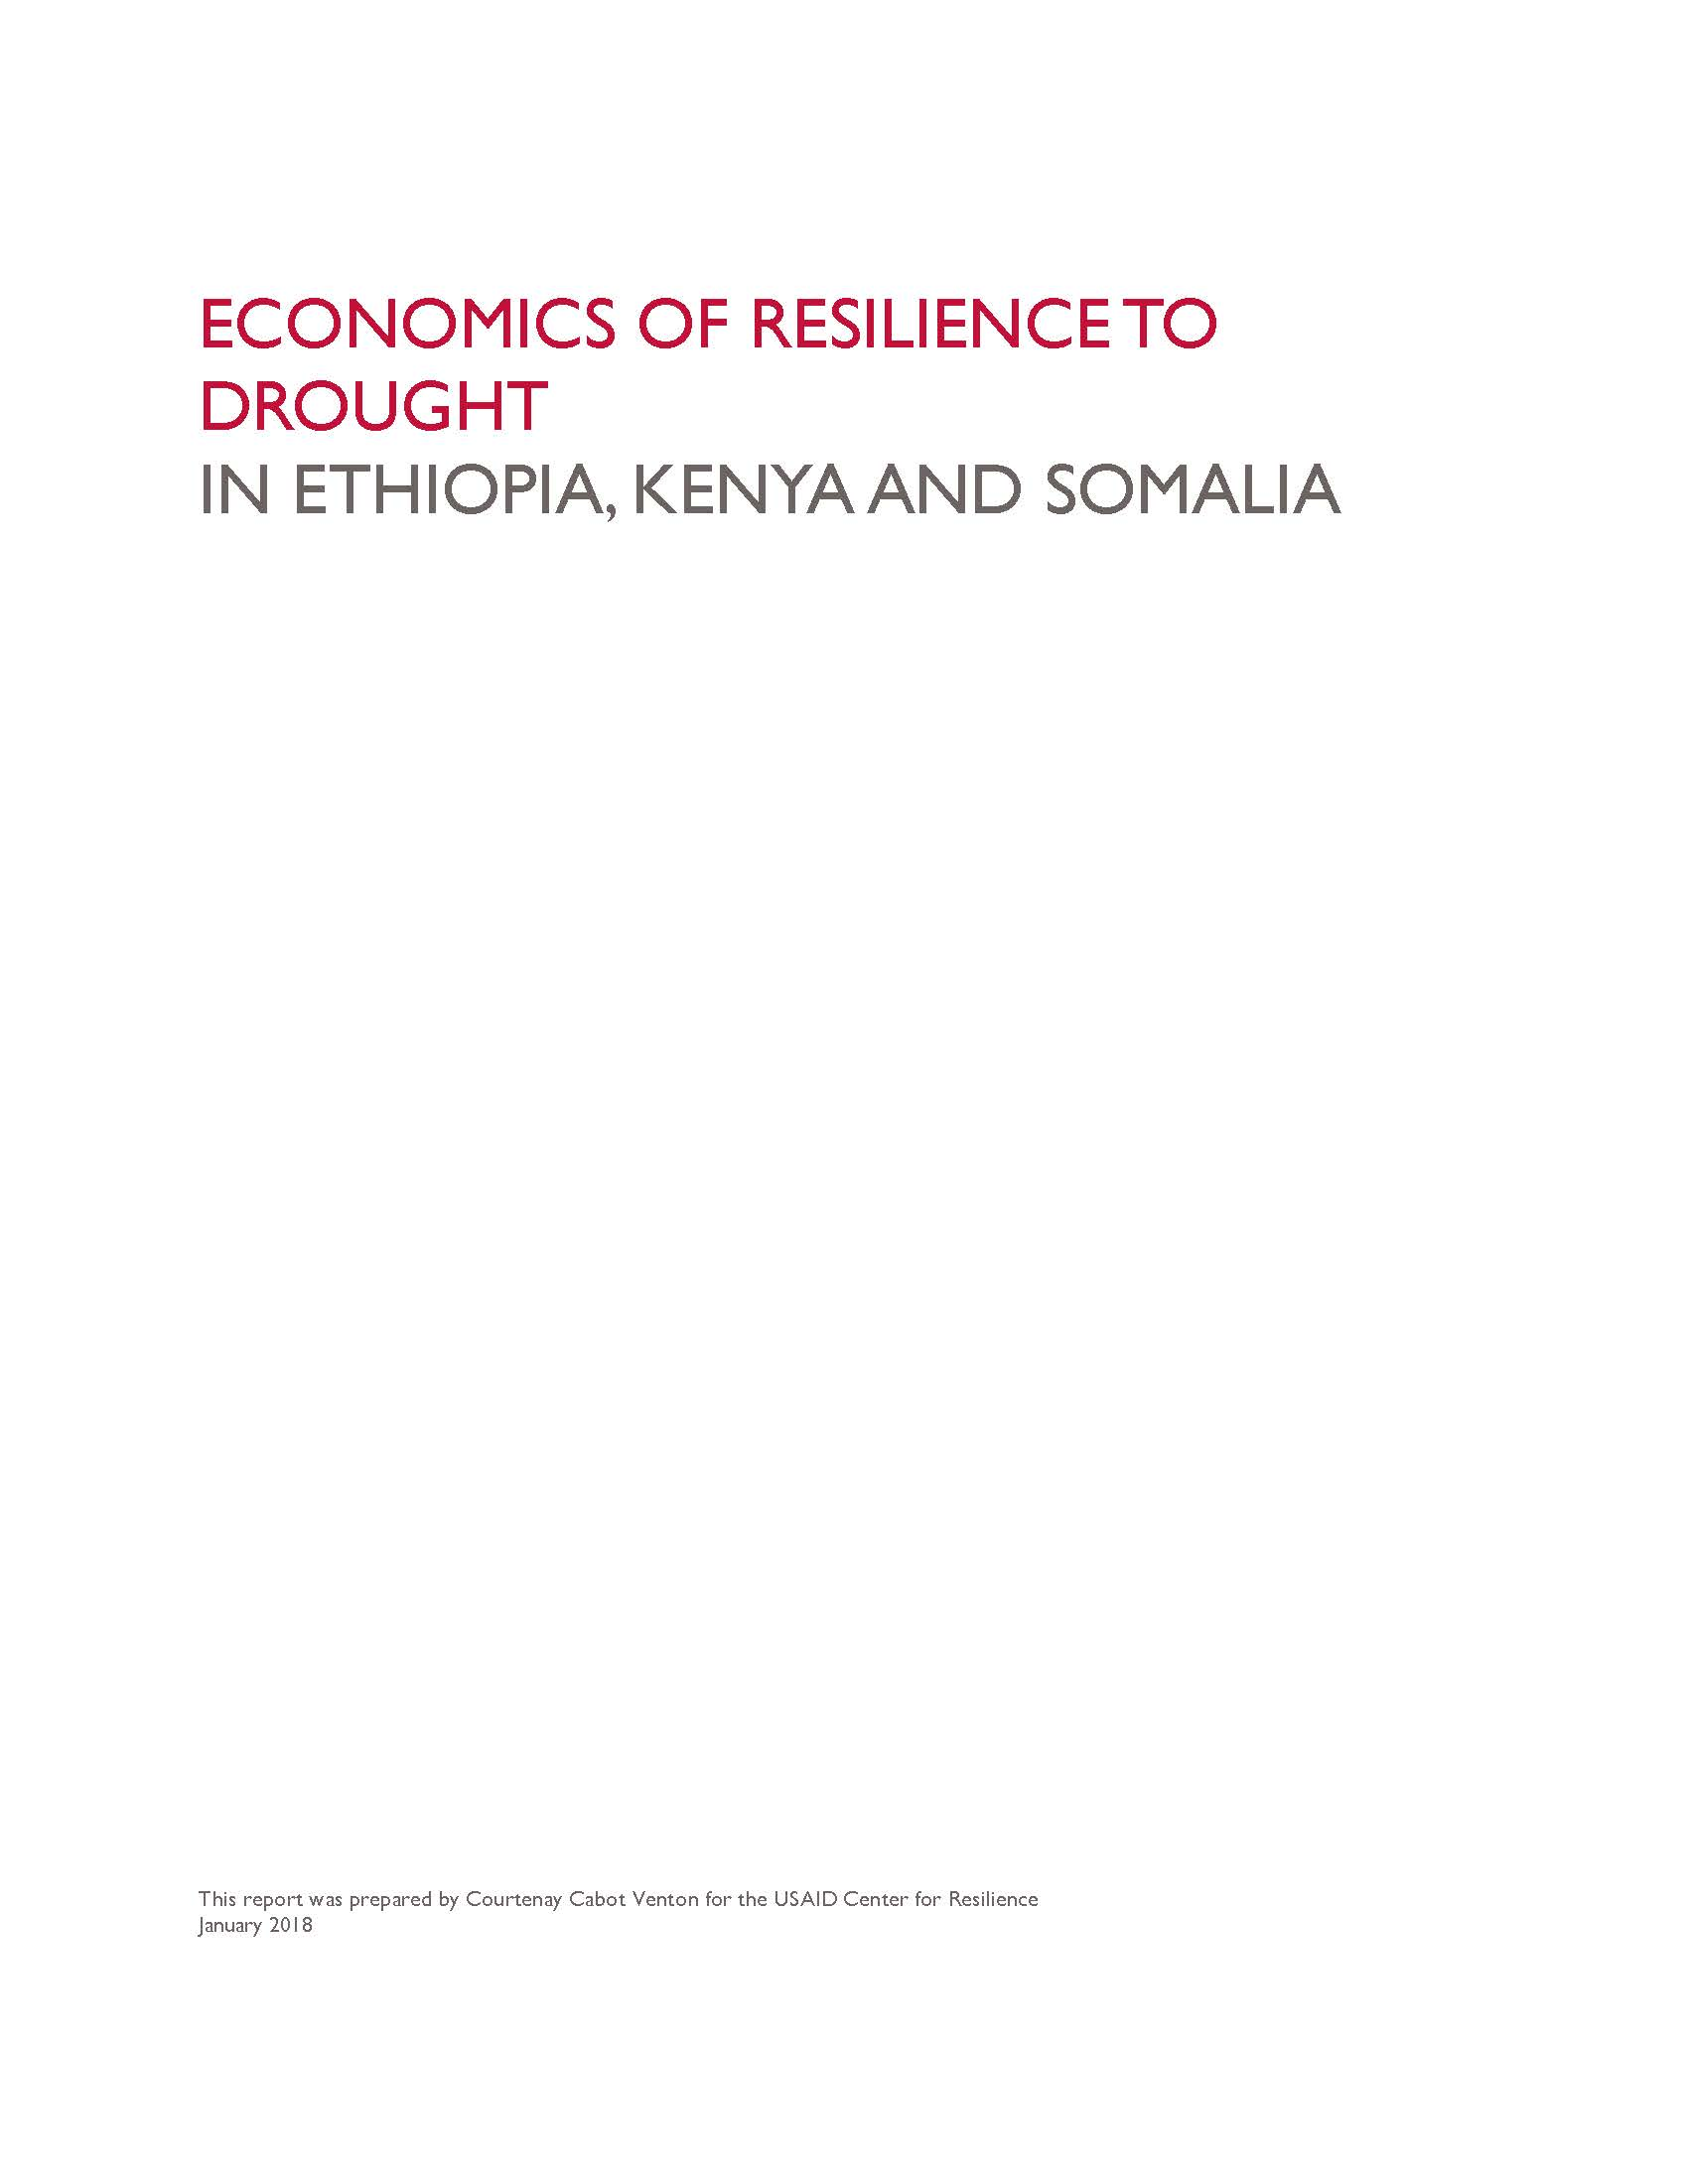 Economics of Resilience to Drought: Summary